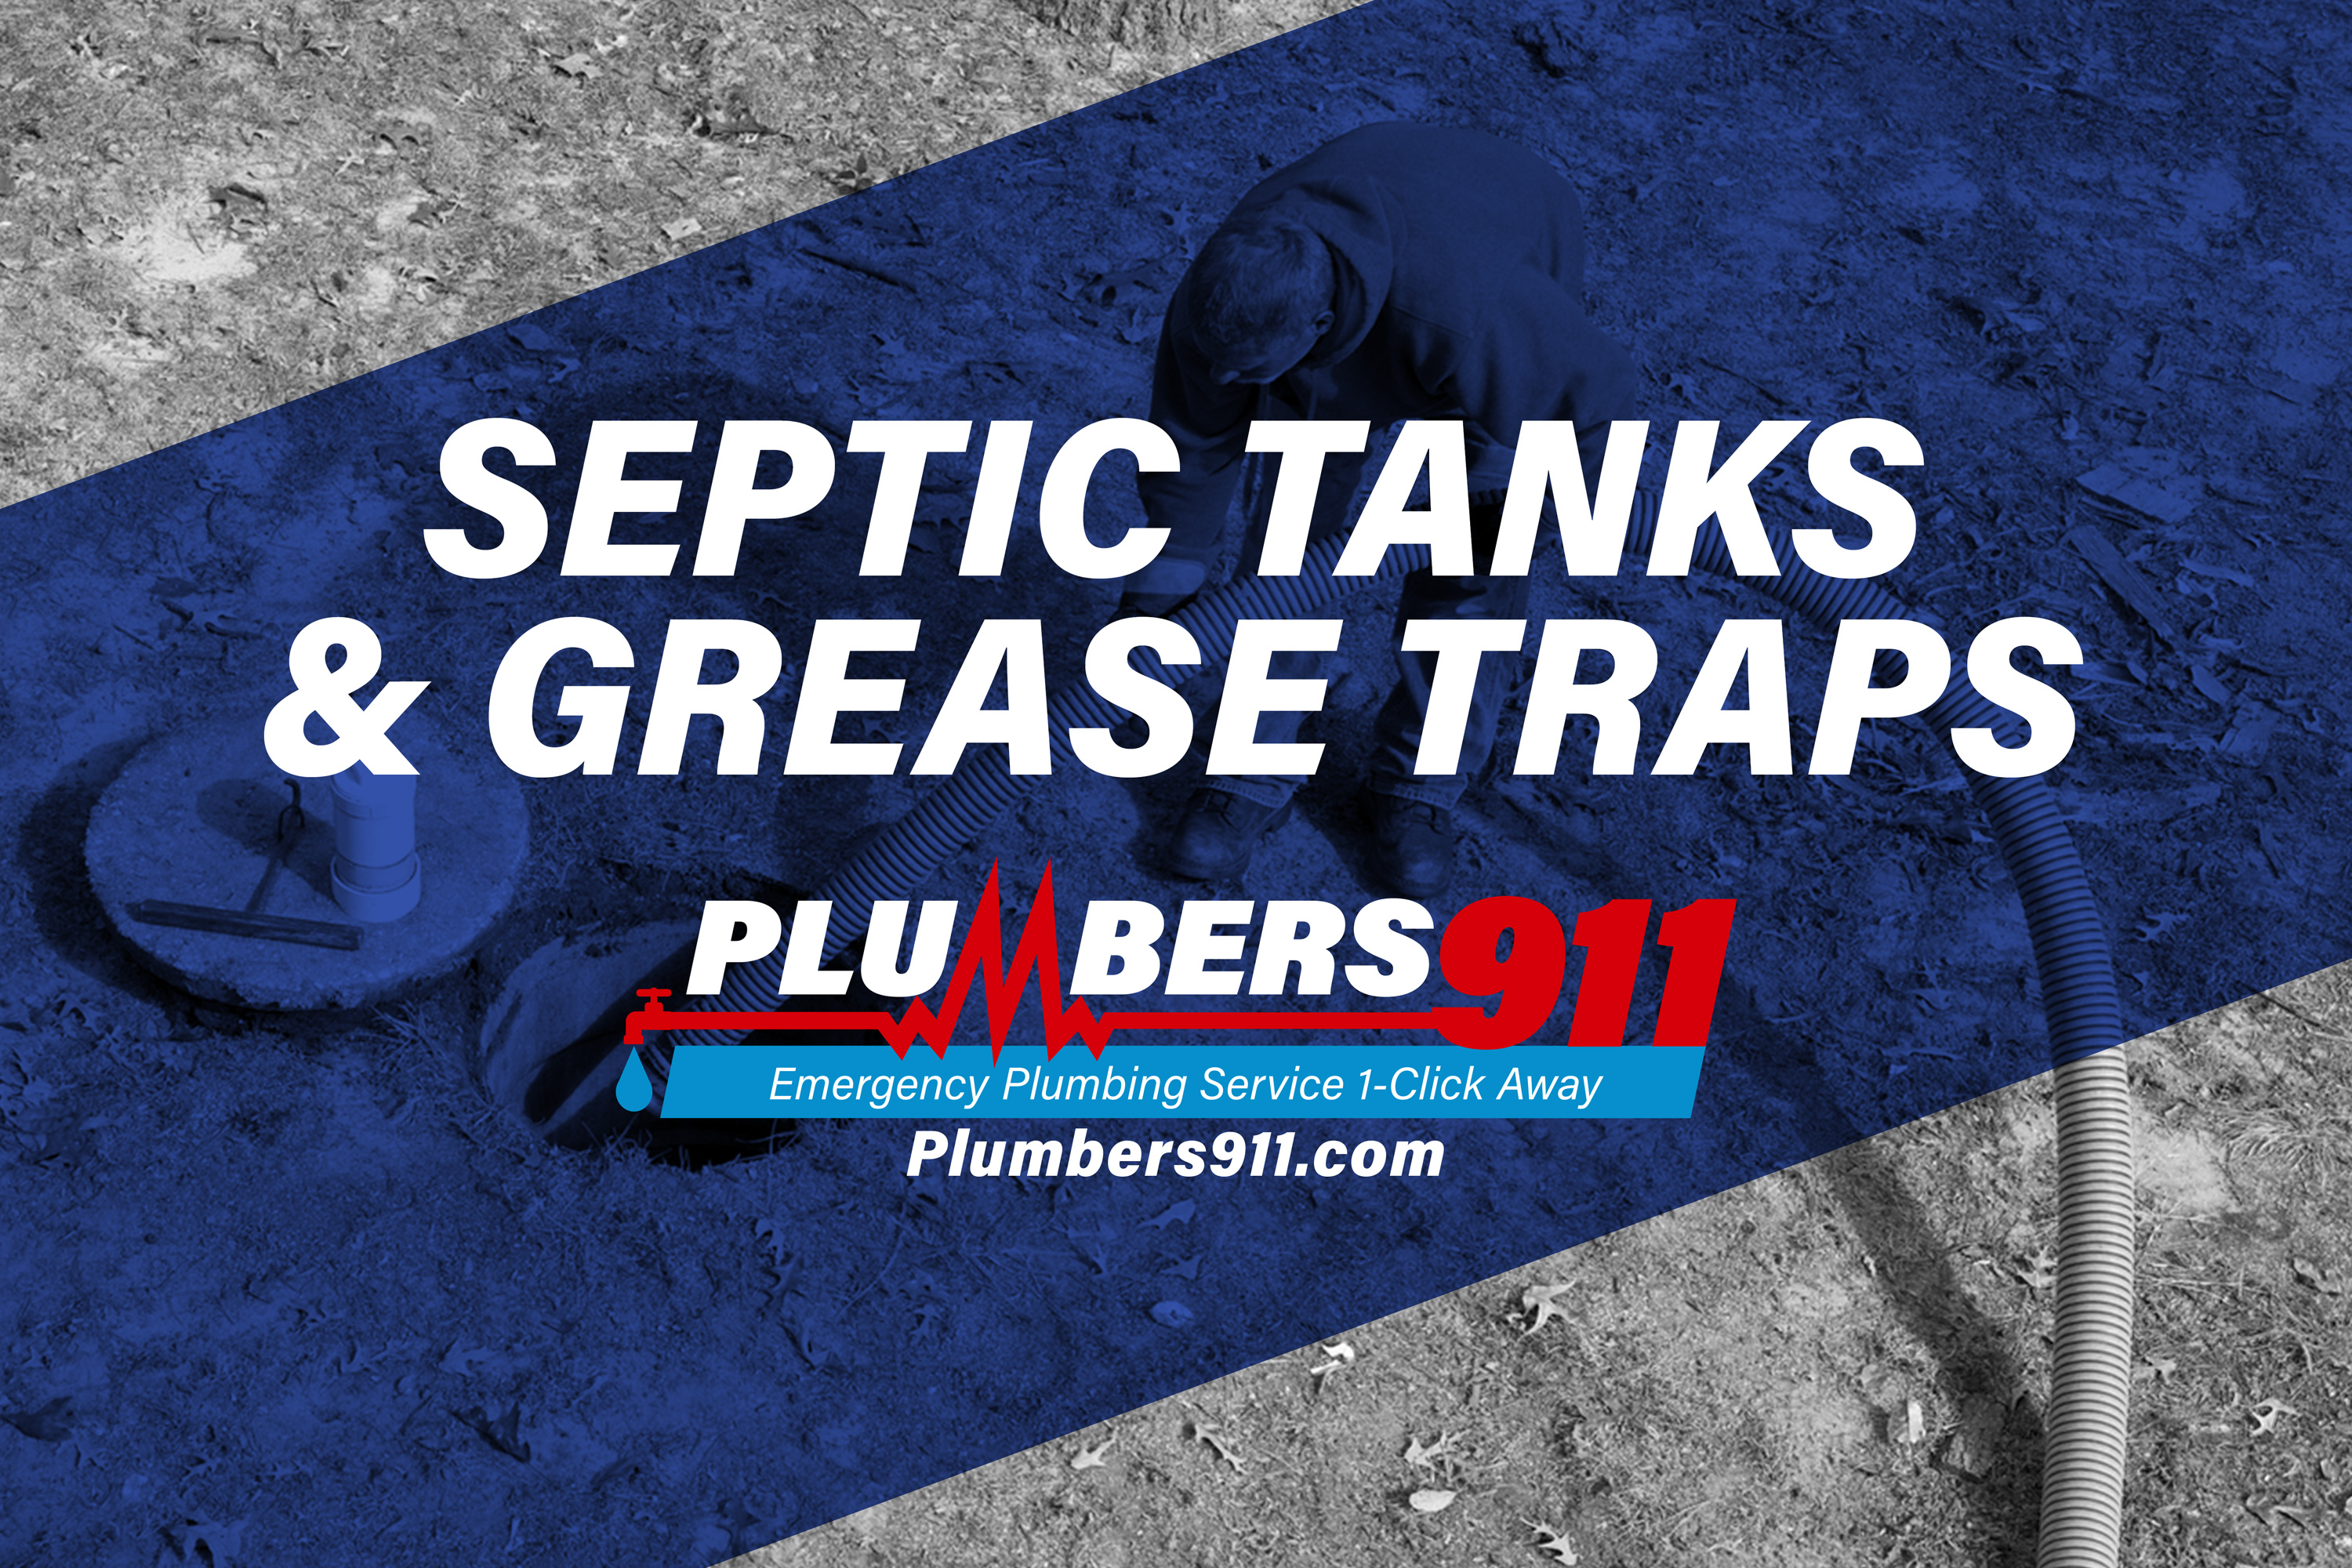 Plumbers 911 - Emergency Plumbing Services - Septic Tanks and Grease Traps